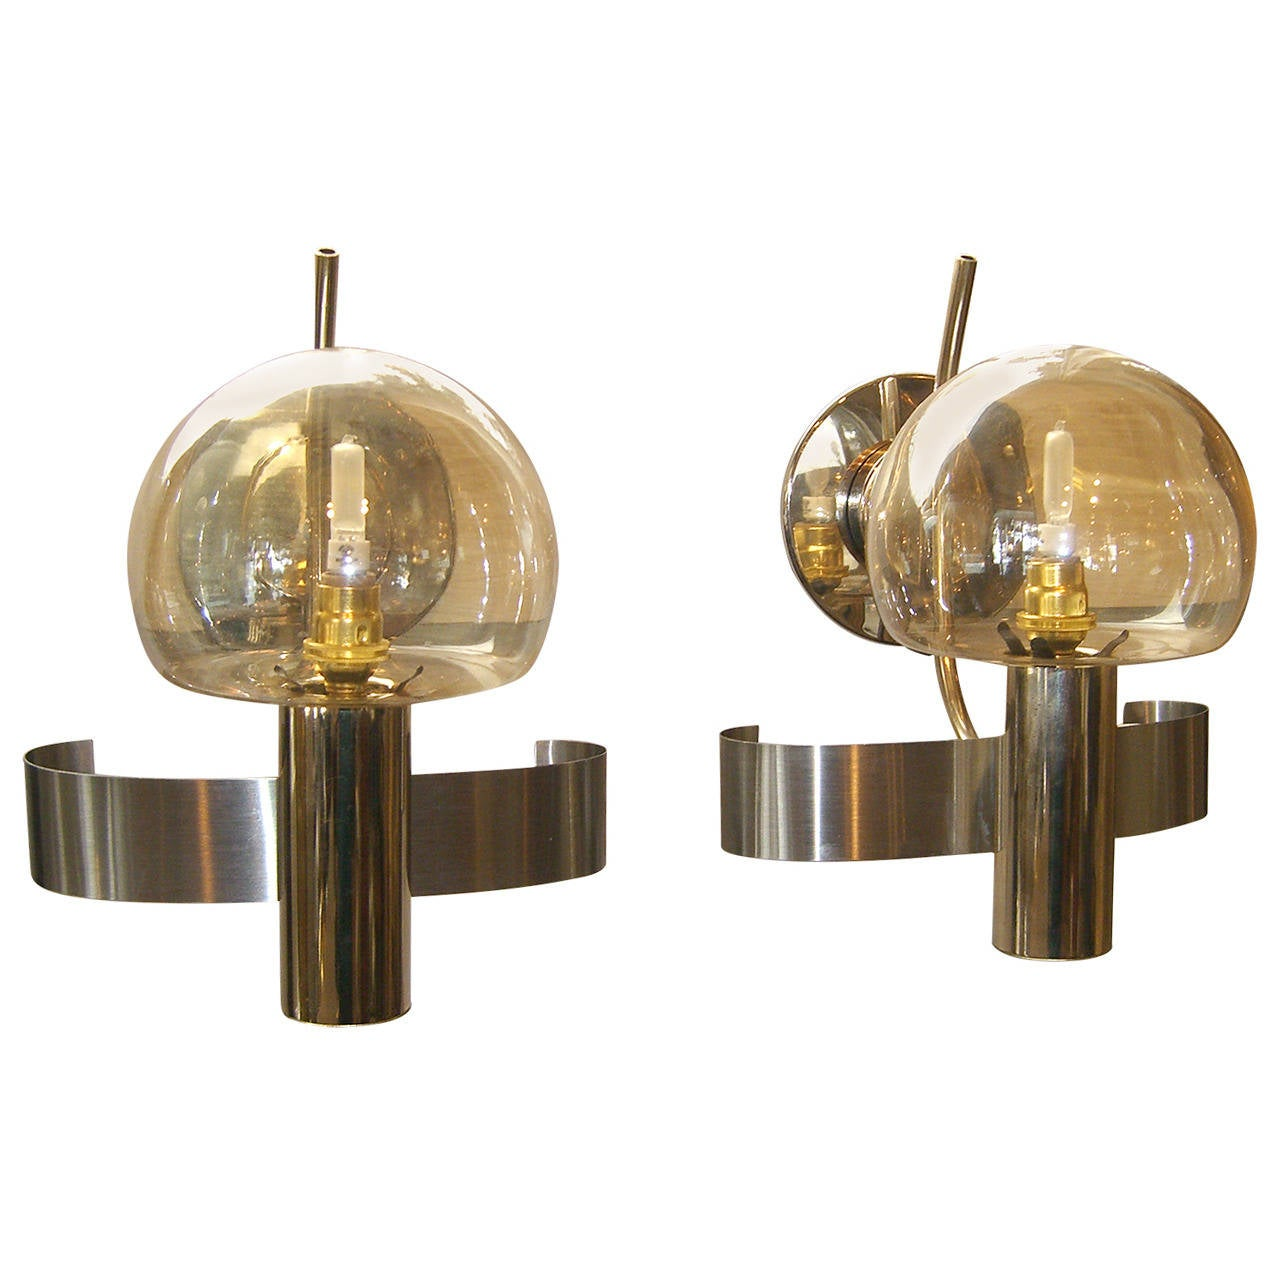 Modern Wall Sconces Italian : Pair of Mid-Century Modern Italian Glass and Metal Wall Lights For Sale at 1stdibs